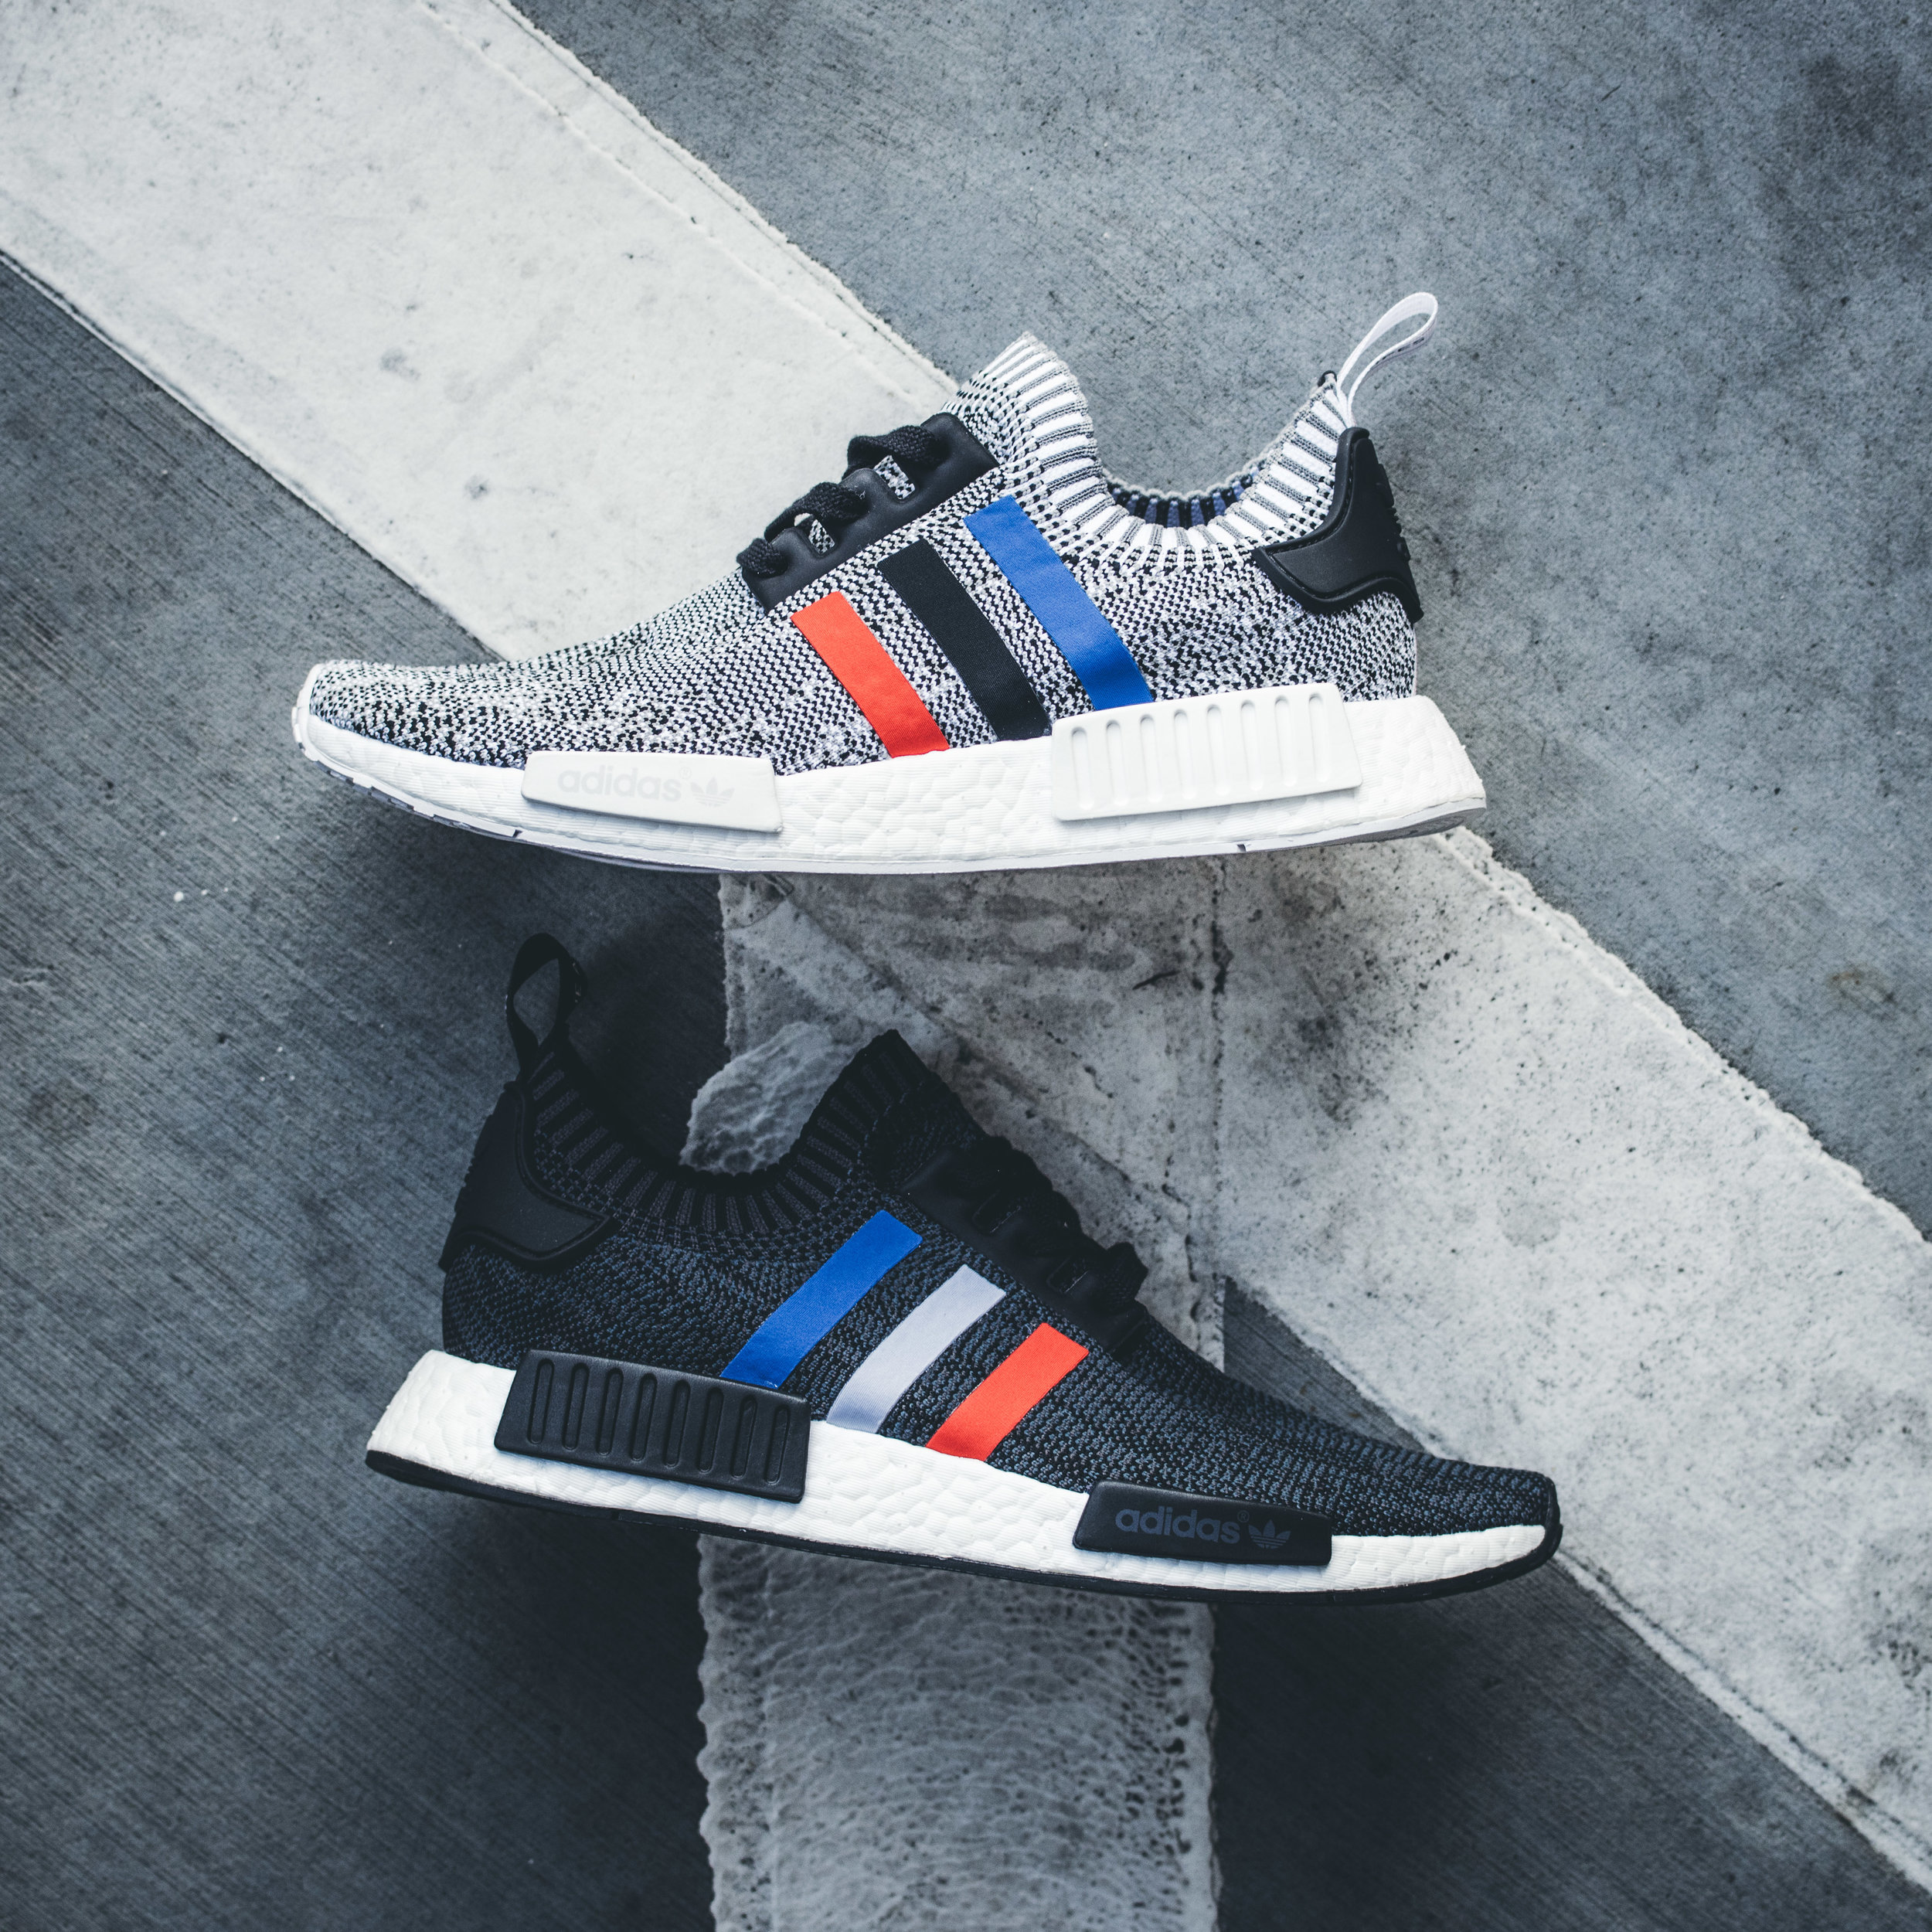 Now Available Adidas Nmd R1 Primeknit Tri Color Pack Epitome